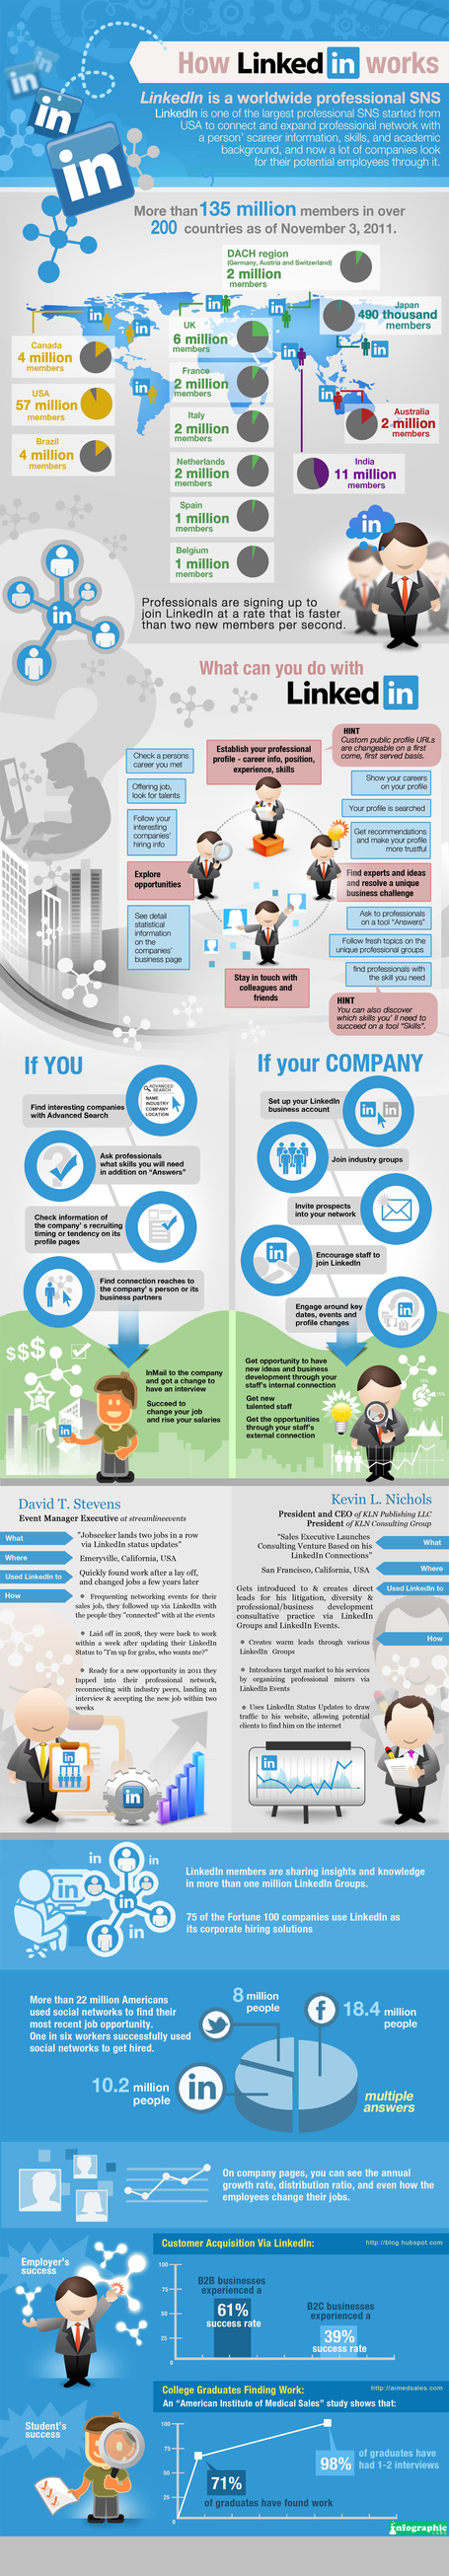 How to use LinkedIn to Grow Individual Business [Infographic] | Neli Maria Mengalli' Scoop.it! Space | Scoop.it